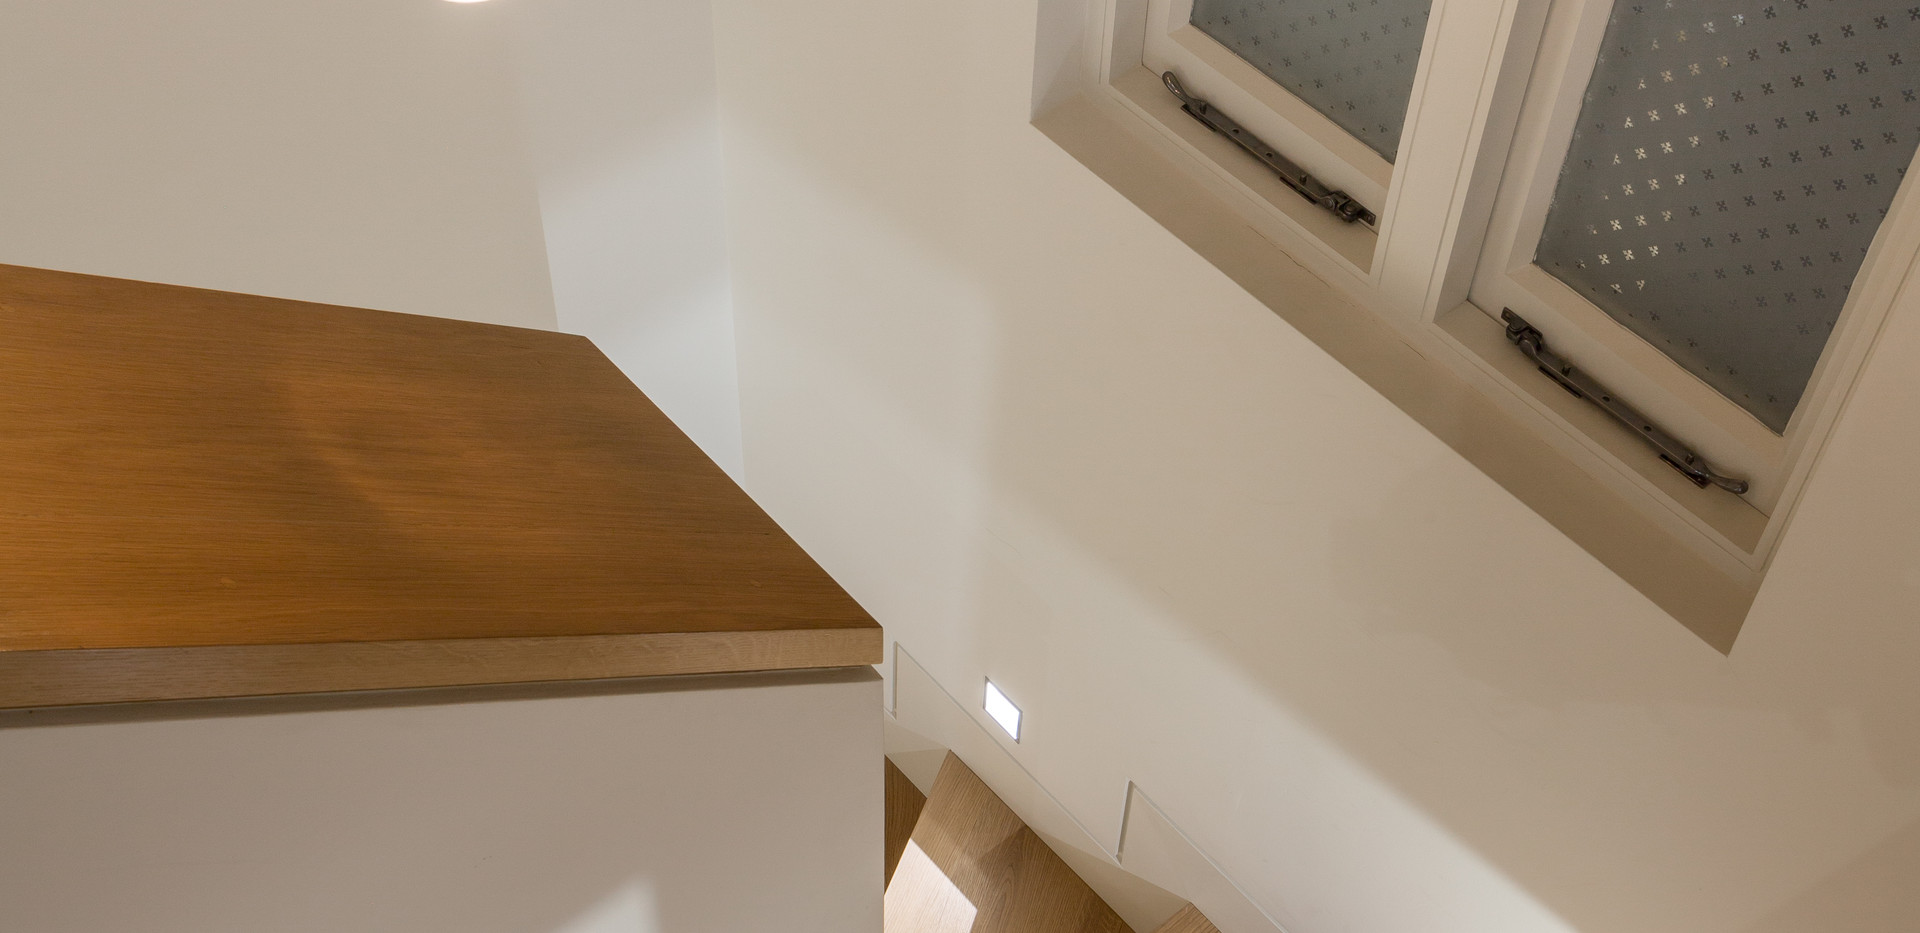 Tanza Road Contemporary Joinery Product - Colorado Springs